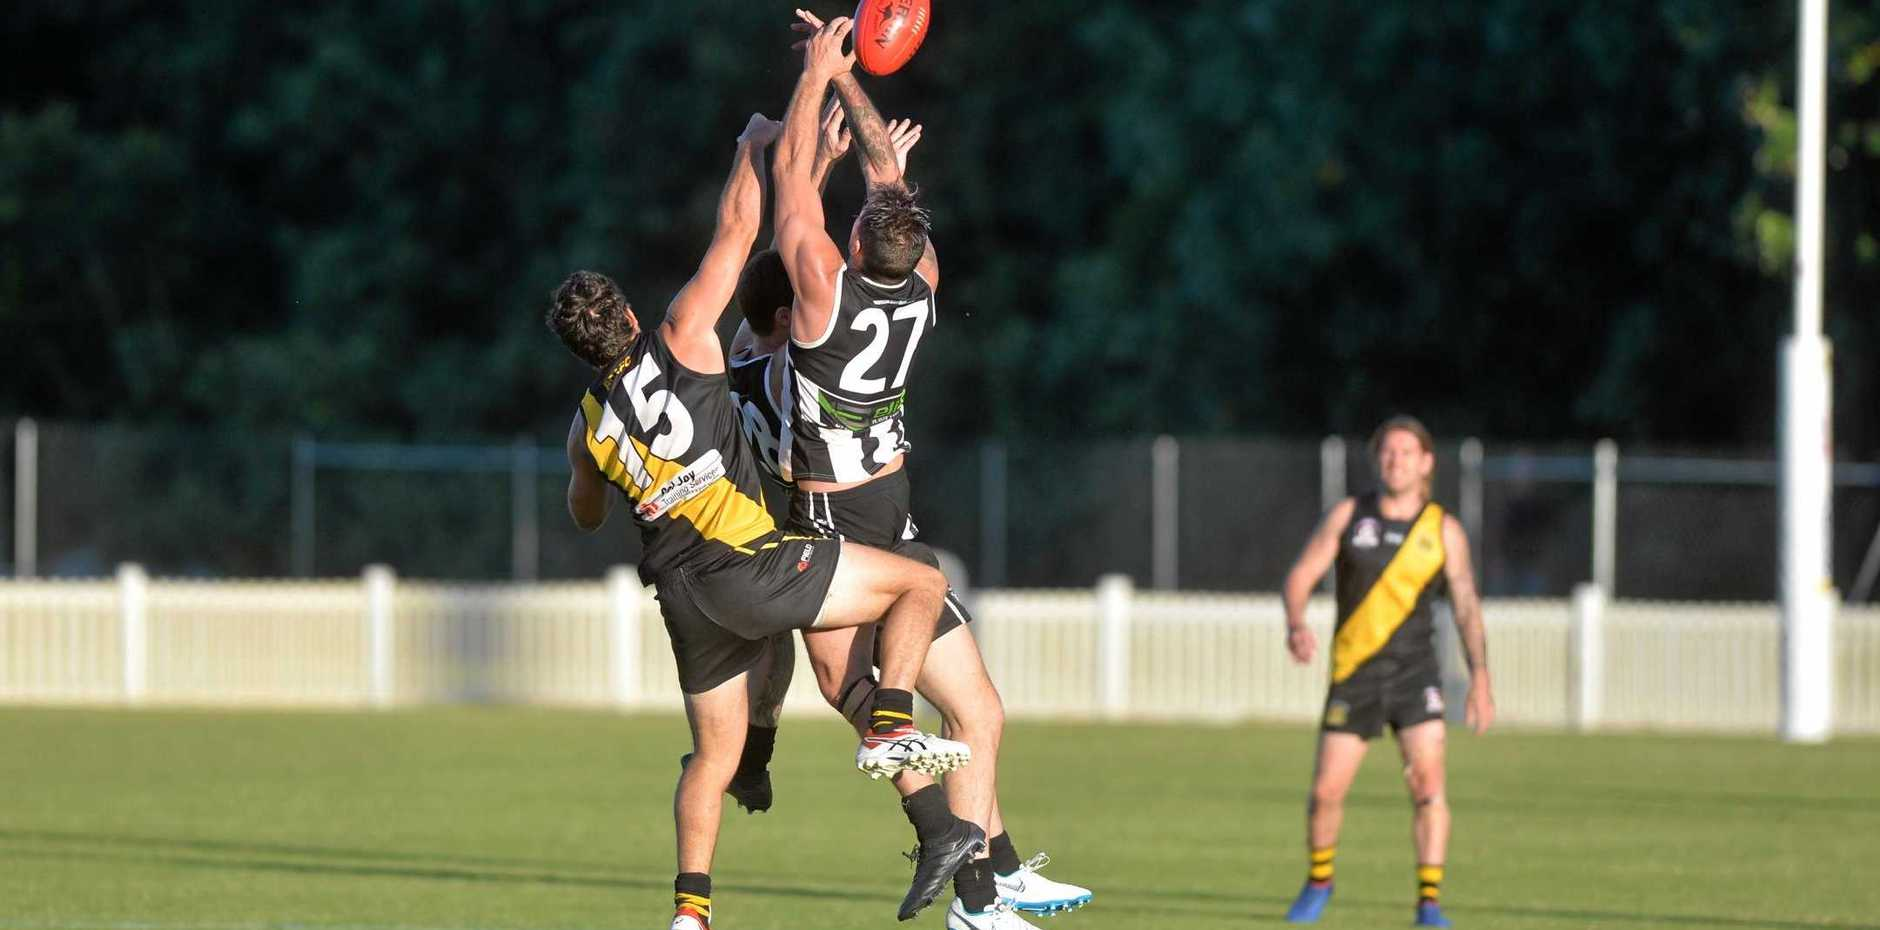 Magpies came from behind to defeat Bakers Creek when the two sides last met back in Round 5.